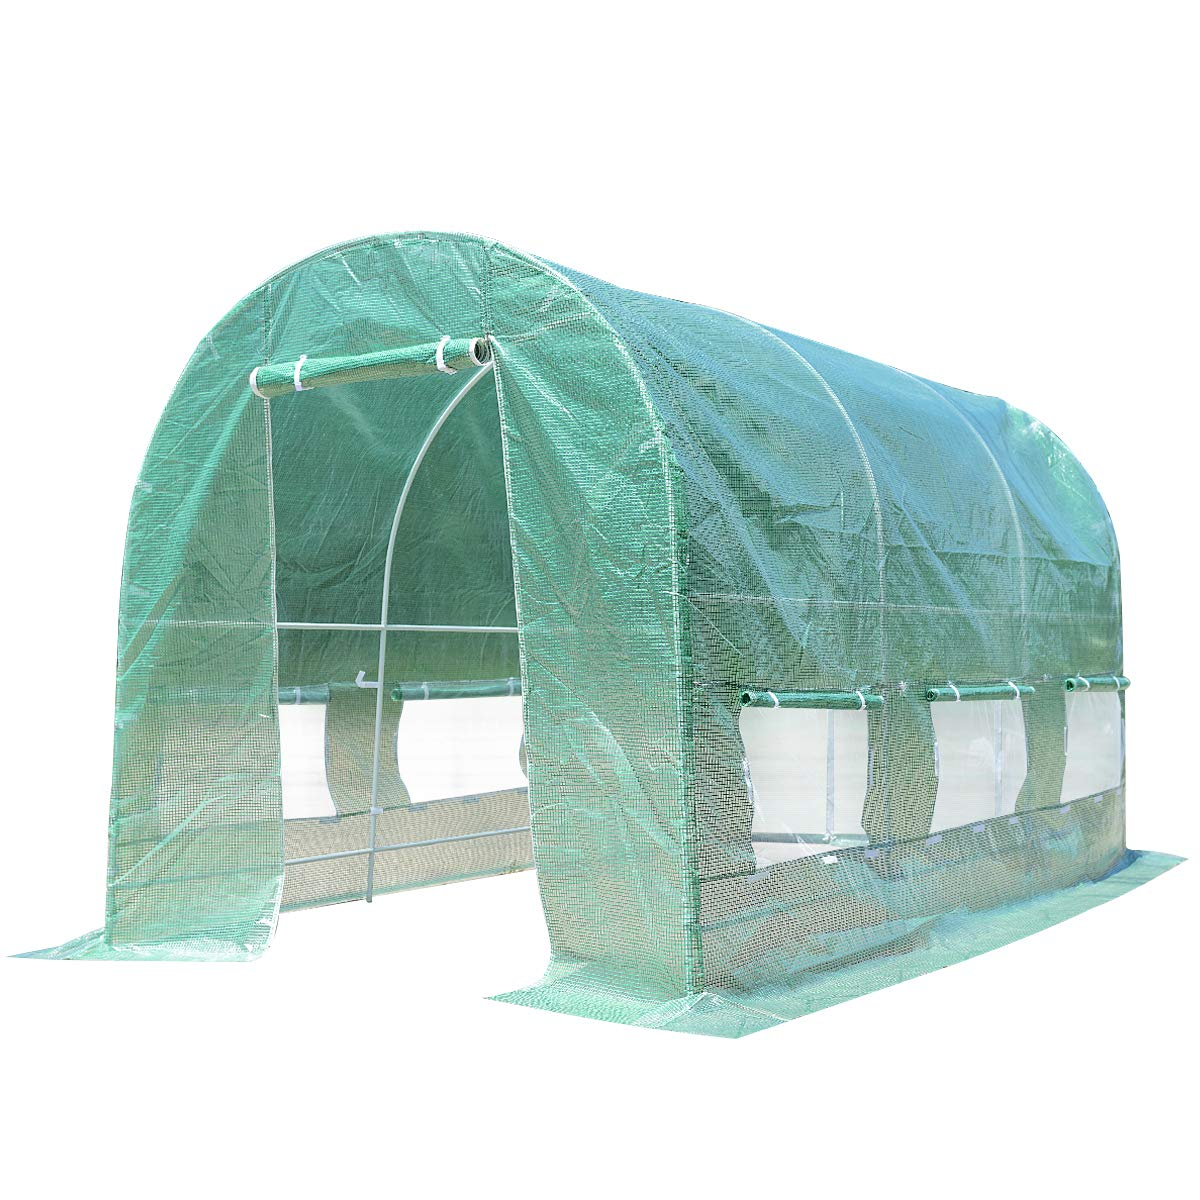 Giantex Portable Walk In Greenhouse Plant Grow Tents Steel Frame Garden Backyard Outdoor Gardening Green House w/ 6 Windows & Doors (11.5'X 6.5'X6.5') by Giantex